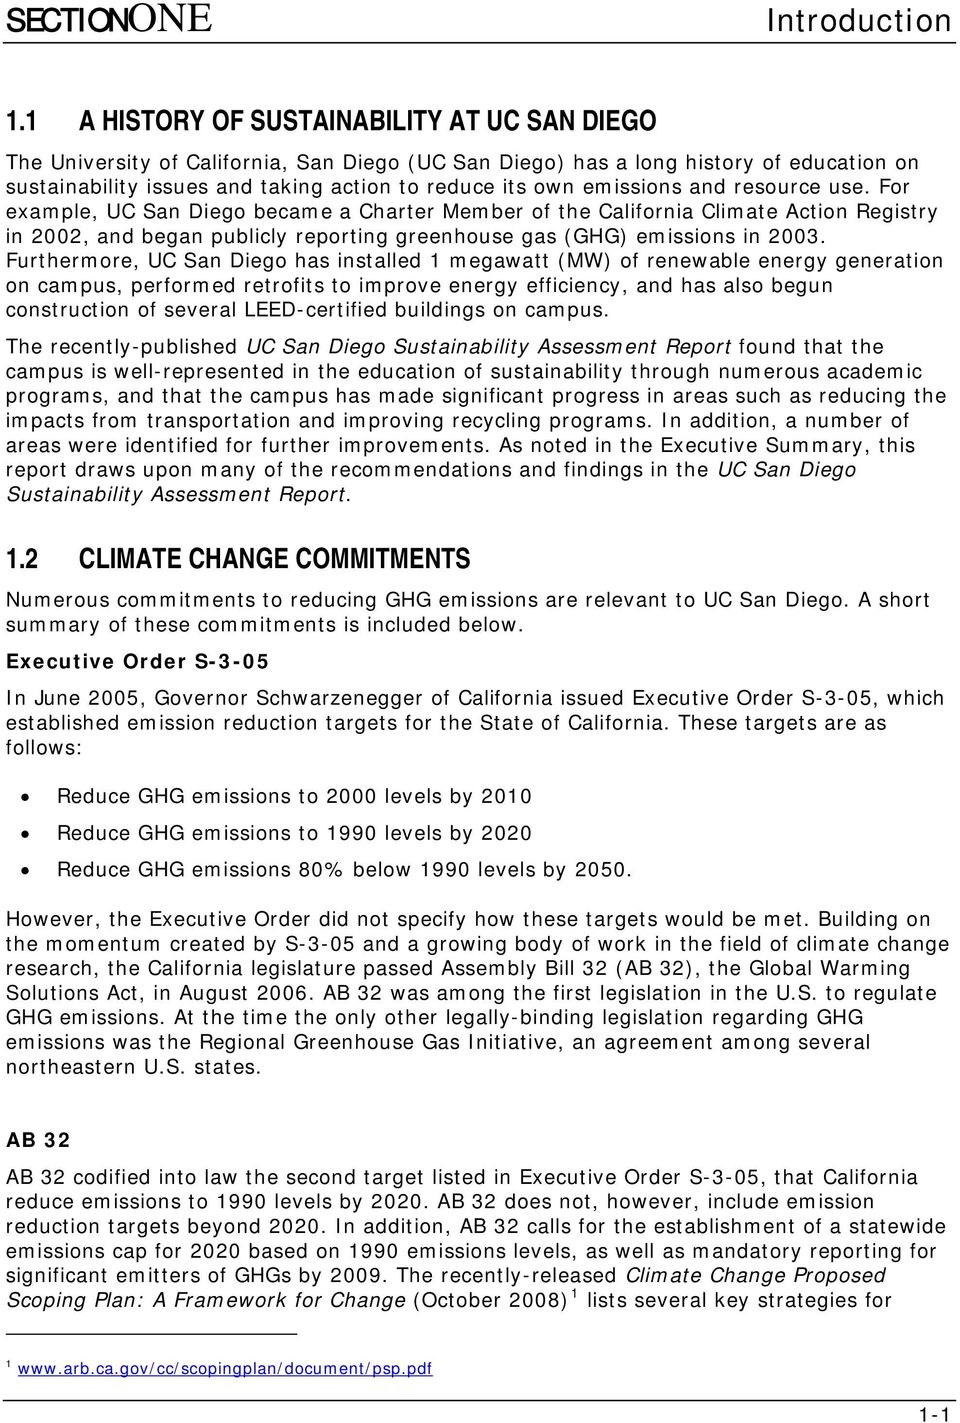 emissions and resource use. For example, UC San Diego became a Charter Member of the California Climate Action Registry in 2002, and began publicly reporting greenhouse gas (GHG) emissions in 2003.